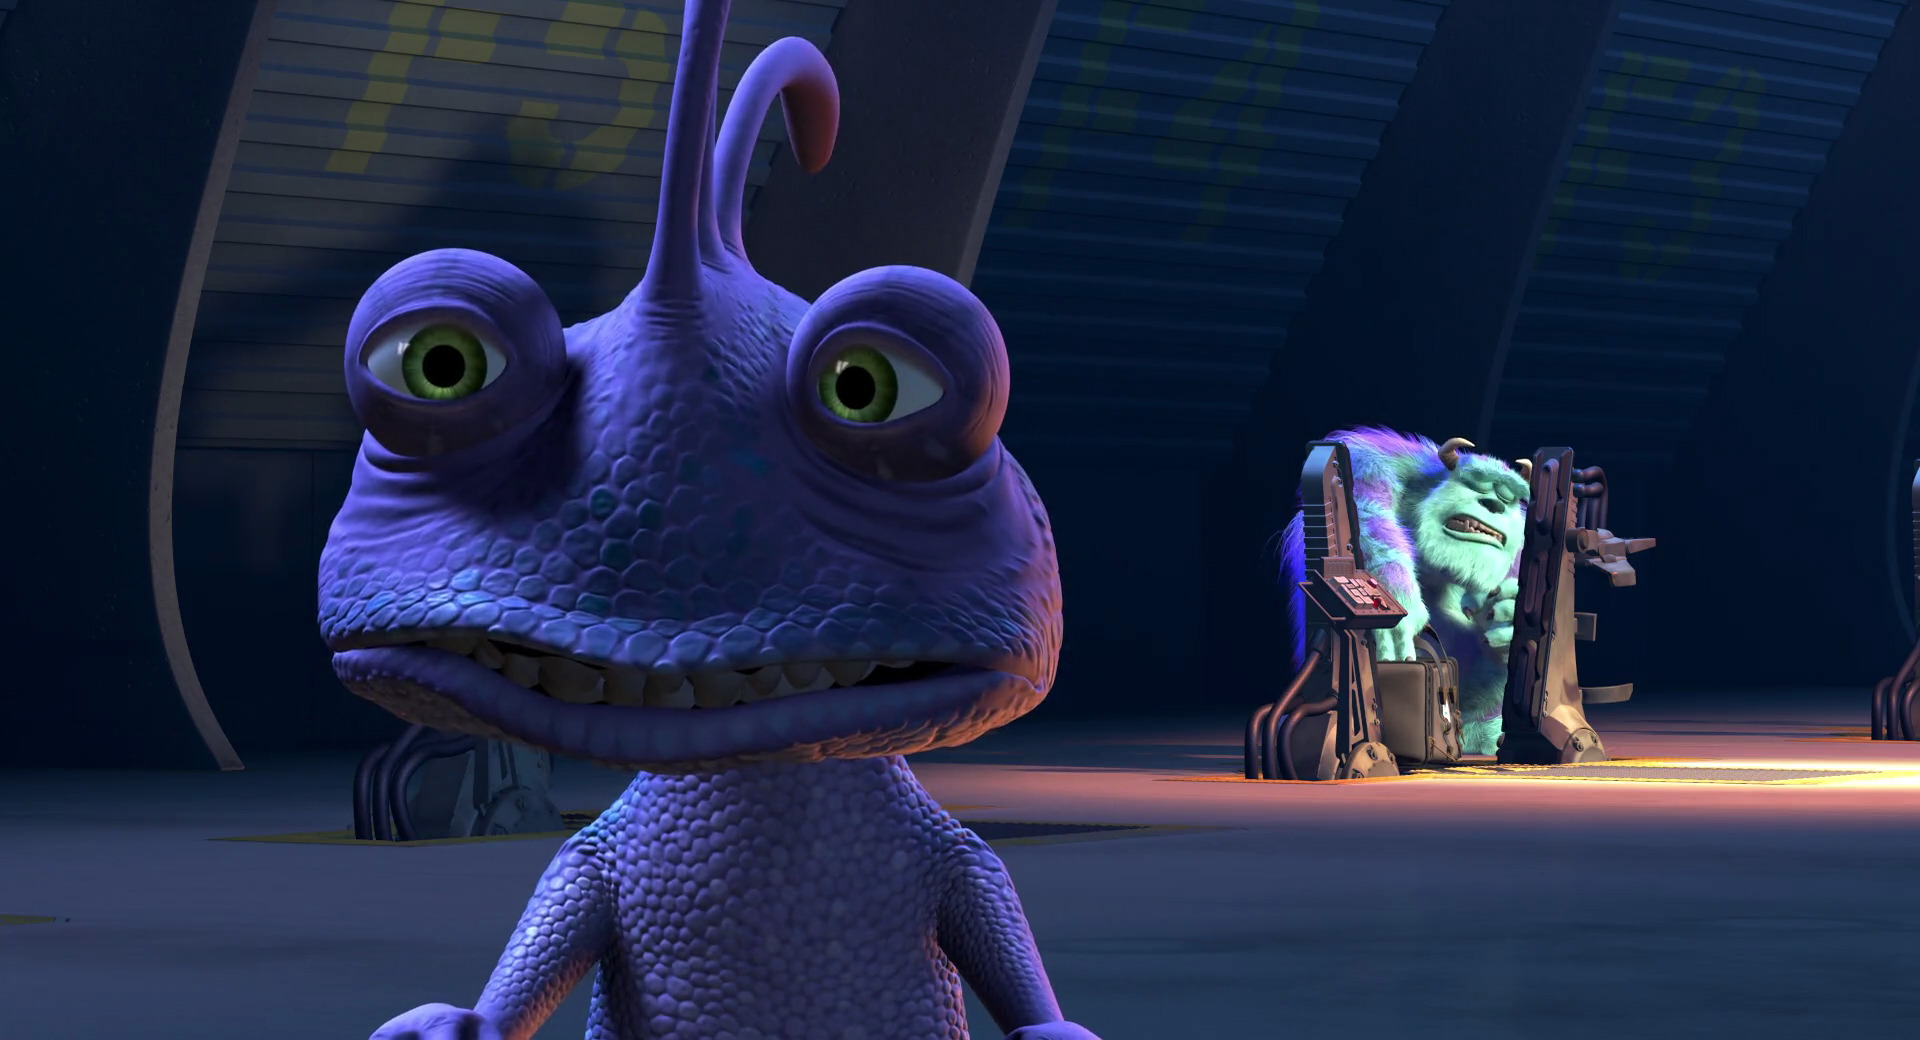 monsters inc animation analysis Monsters, inc does something incredible and even transcendent through the  pixar team's pristine animation, high-energy wit, and narrative.